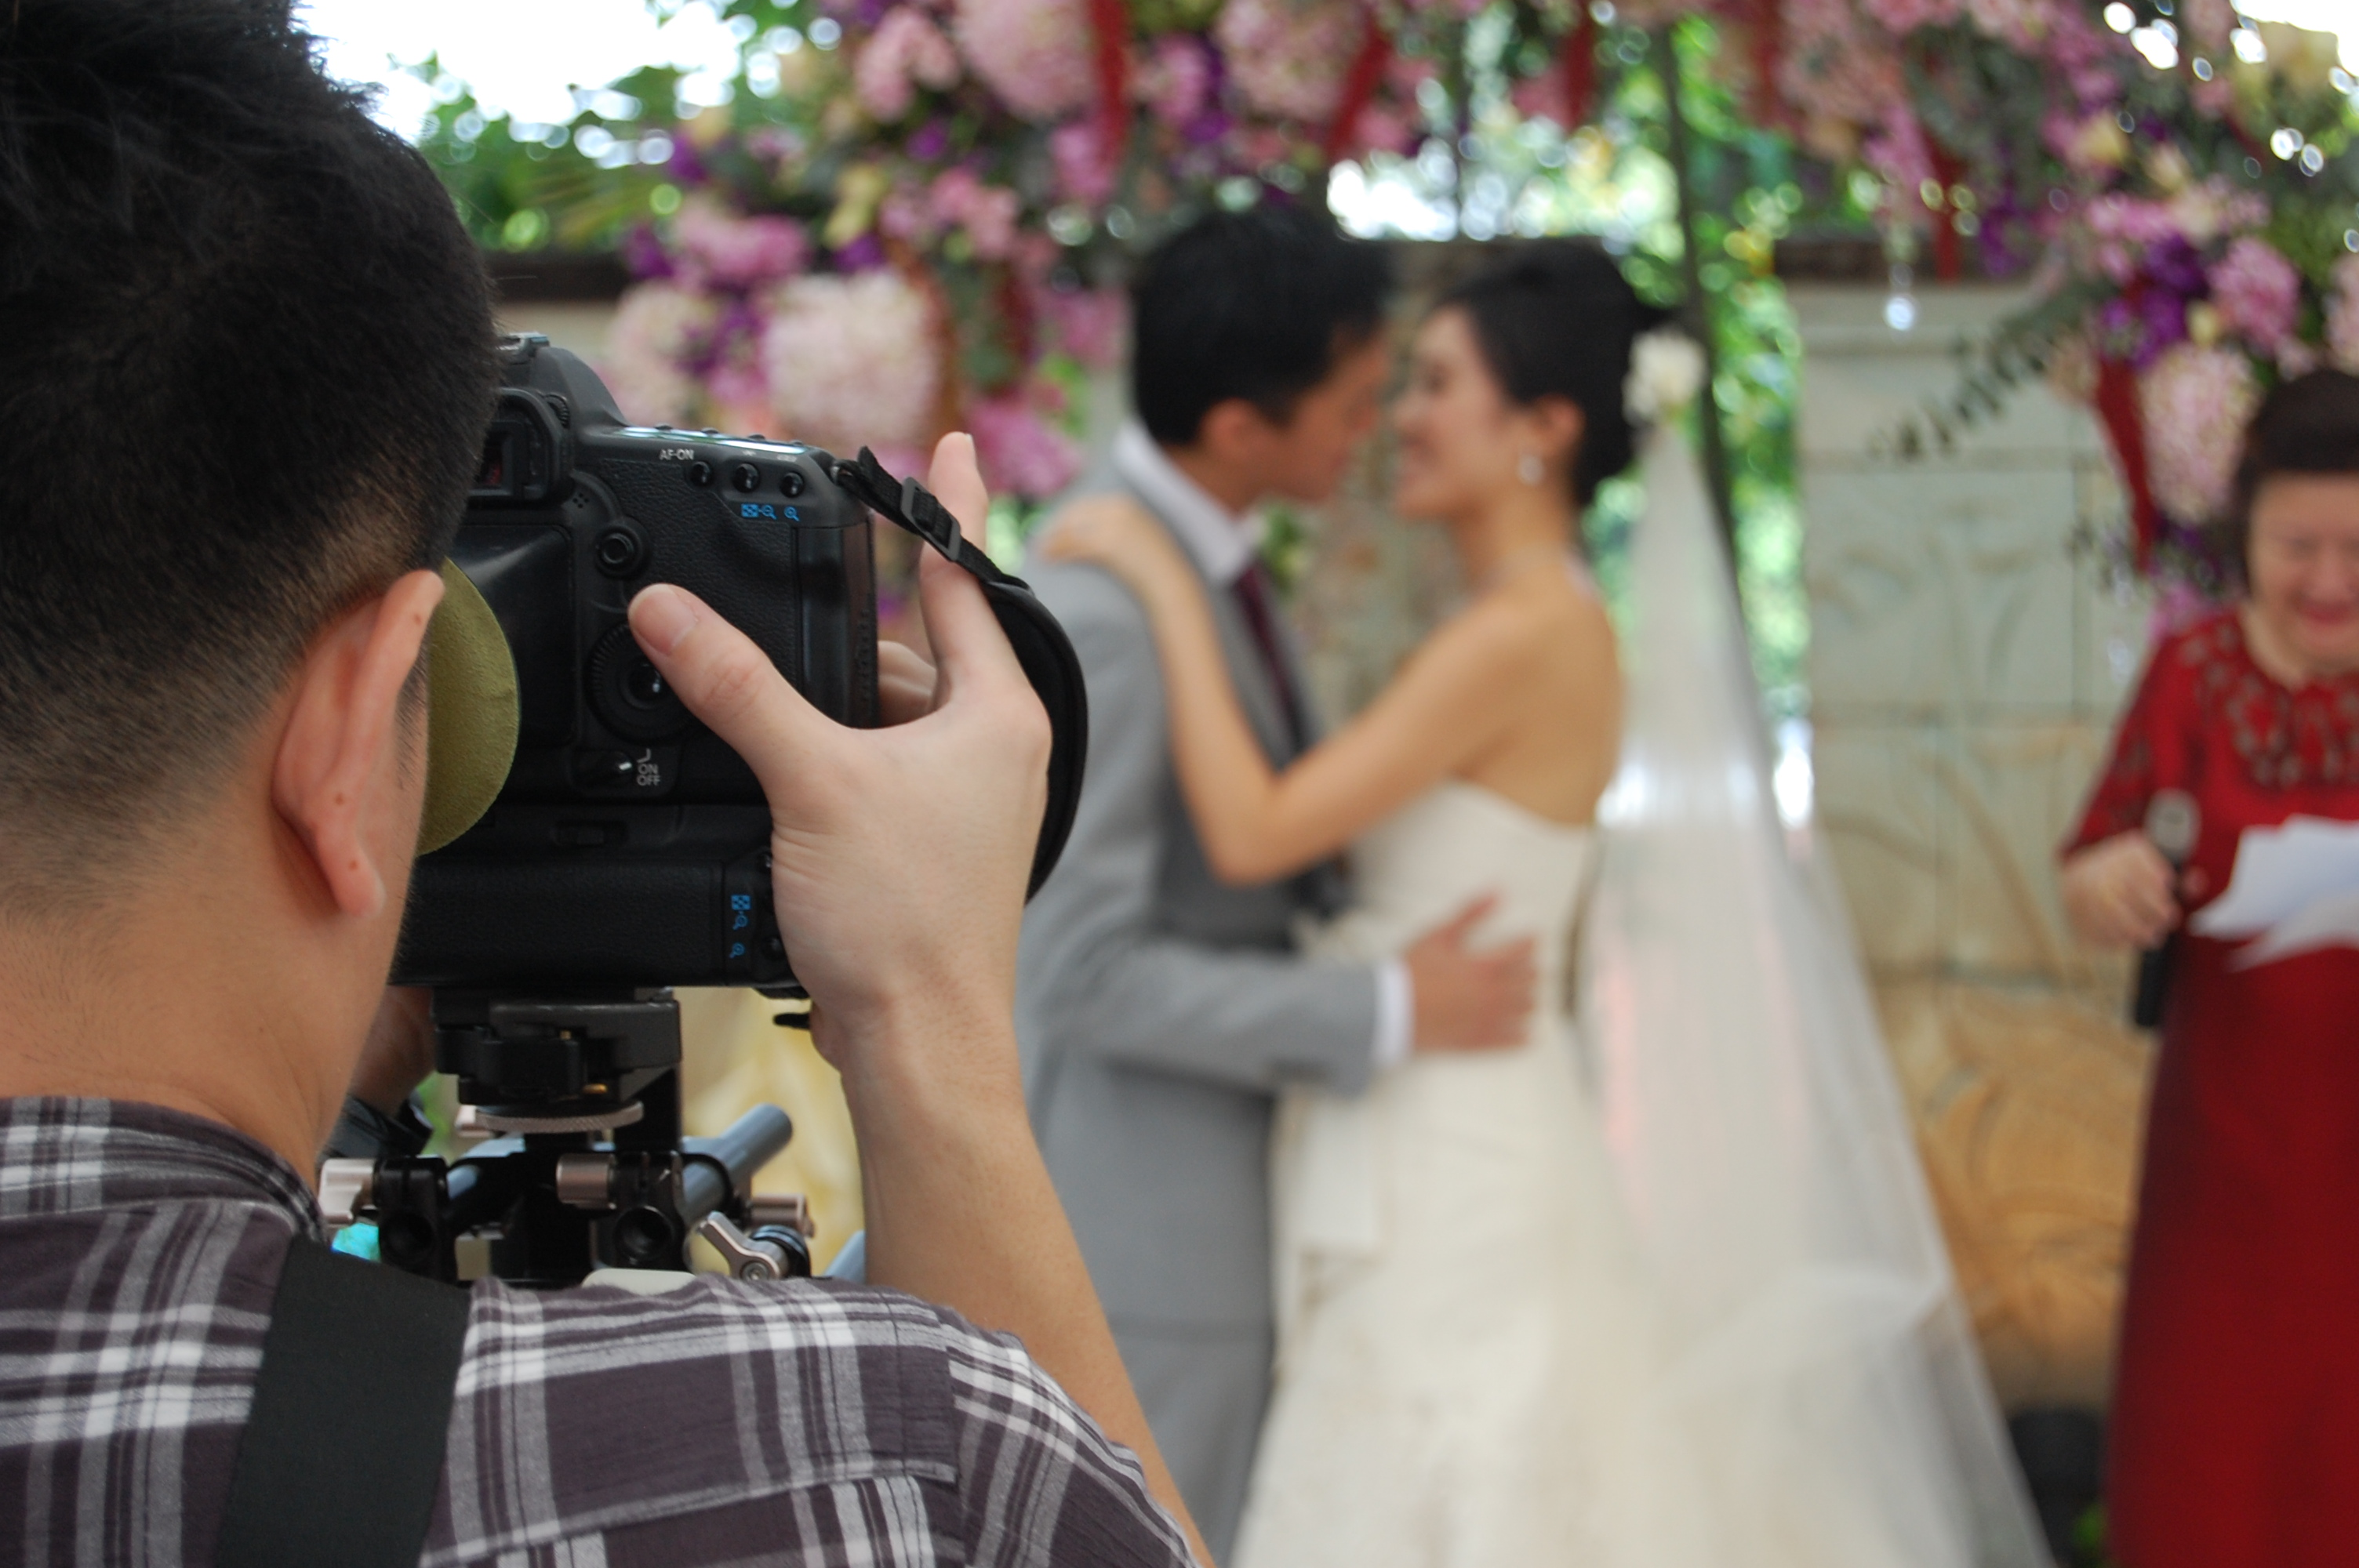 My beautiful friend Su, getting married in Singapore in March 2013.